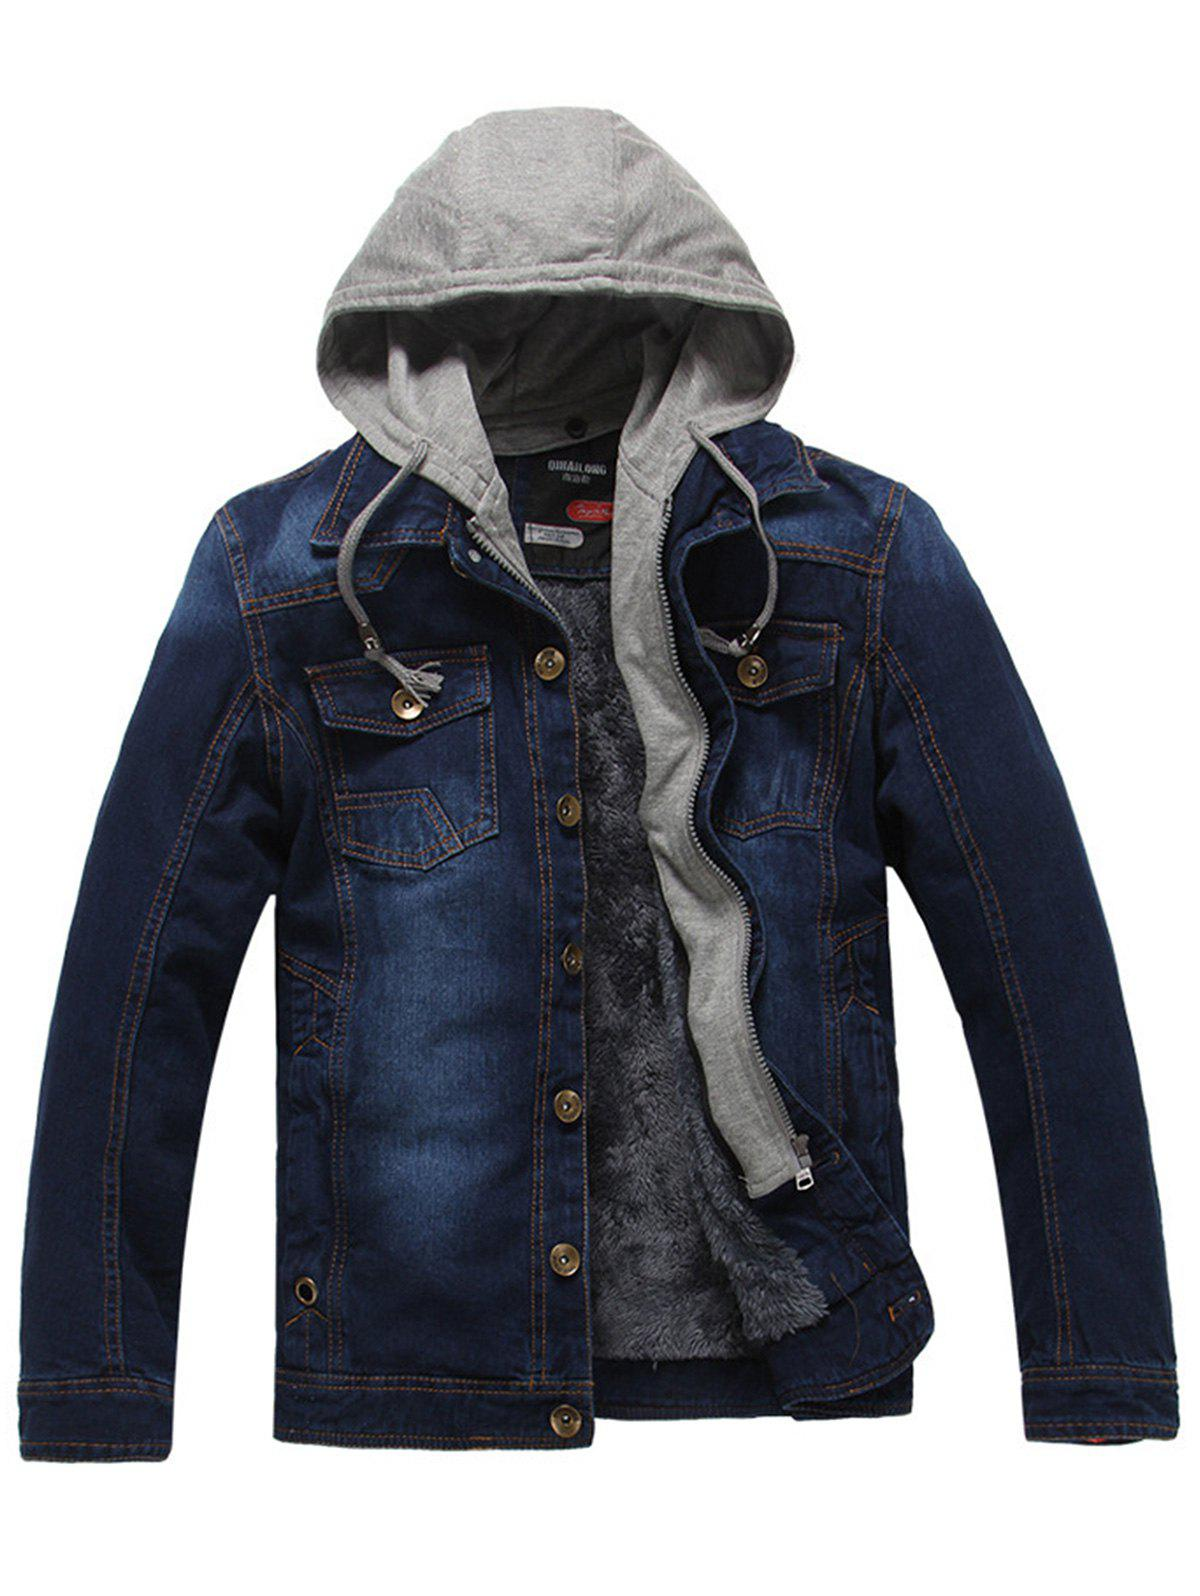 Drawstring Hooded Denim Jean Jacket - CERULEAN 2XL